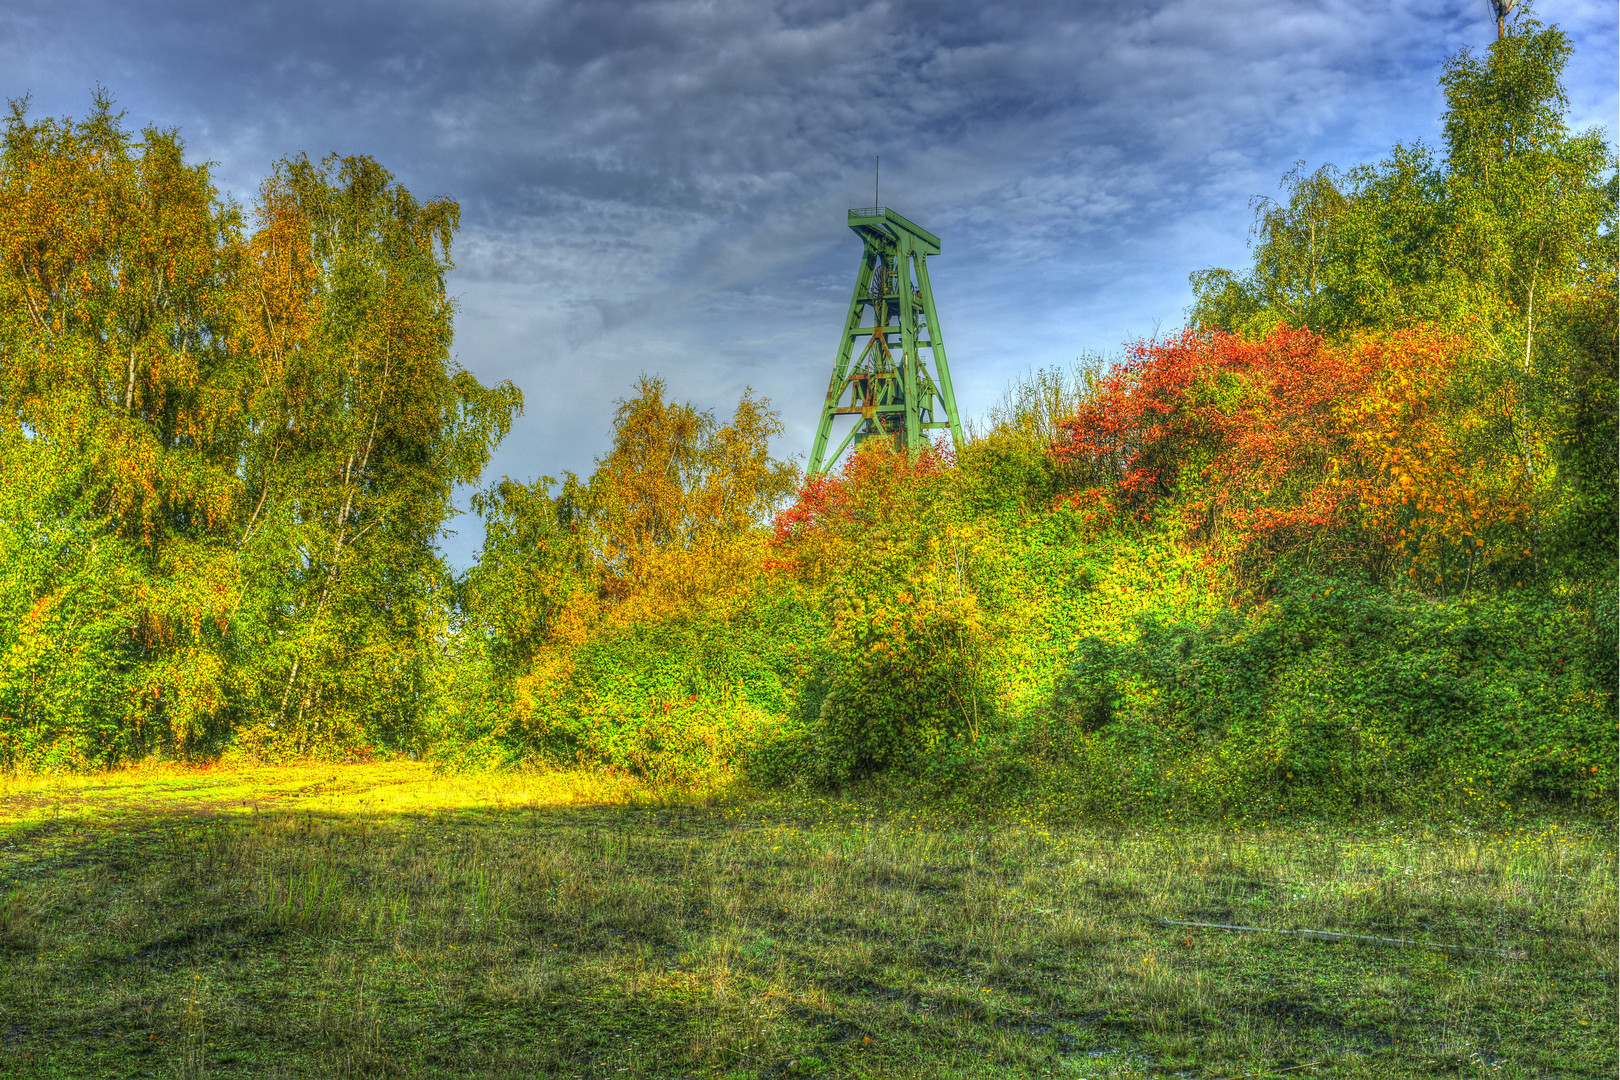 Herbst triff Industrie